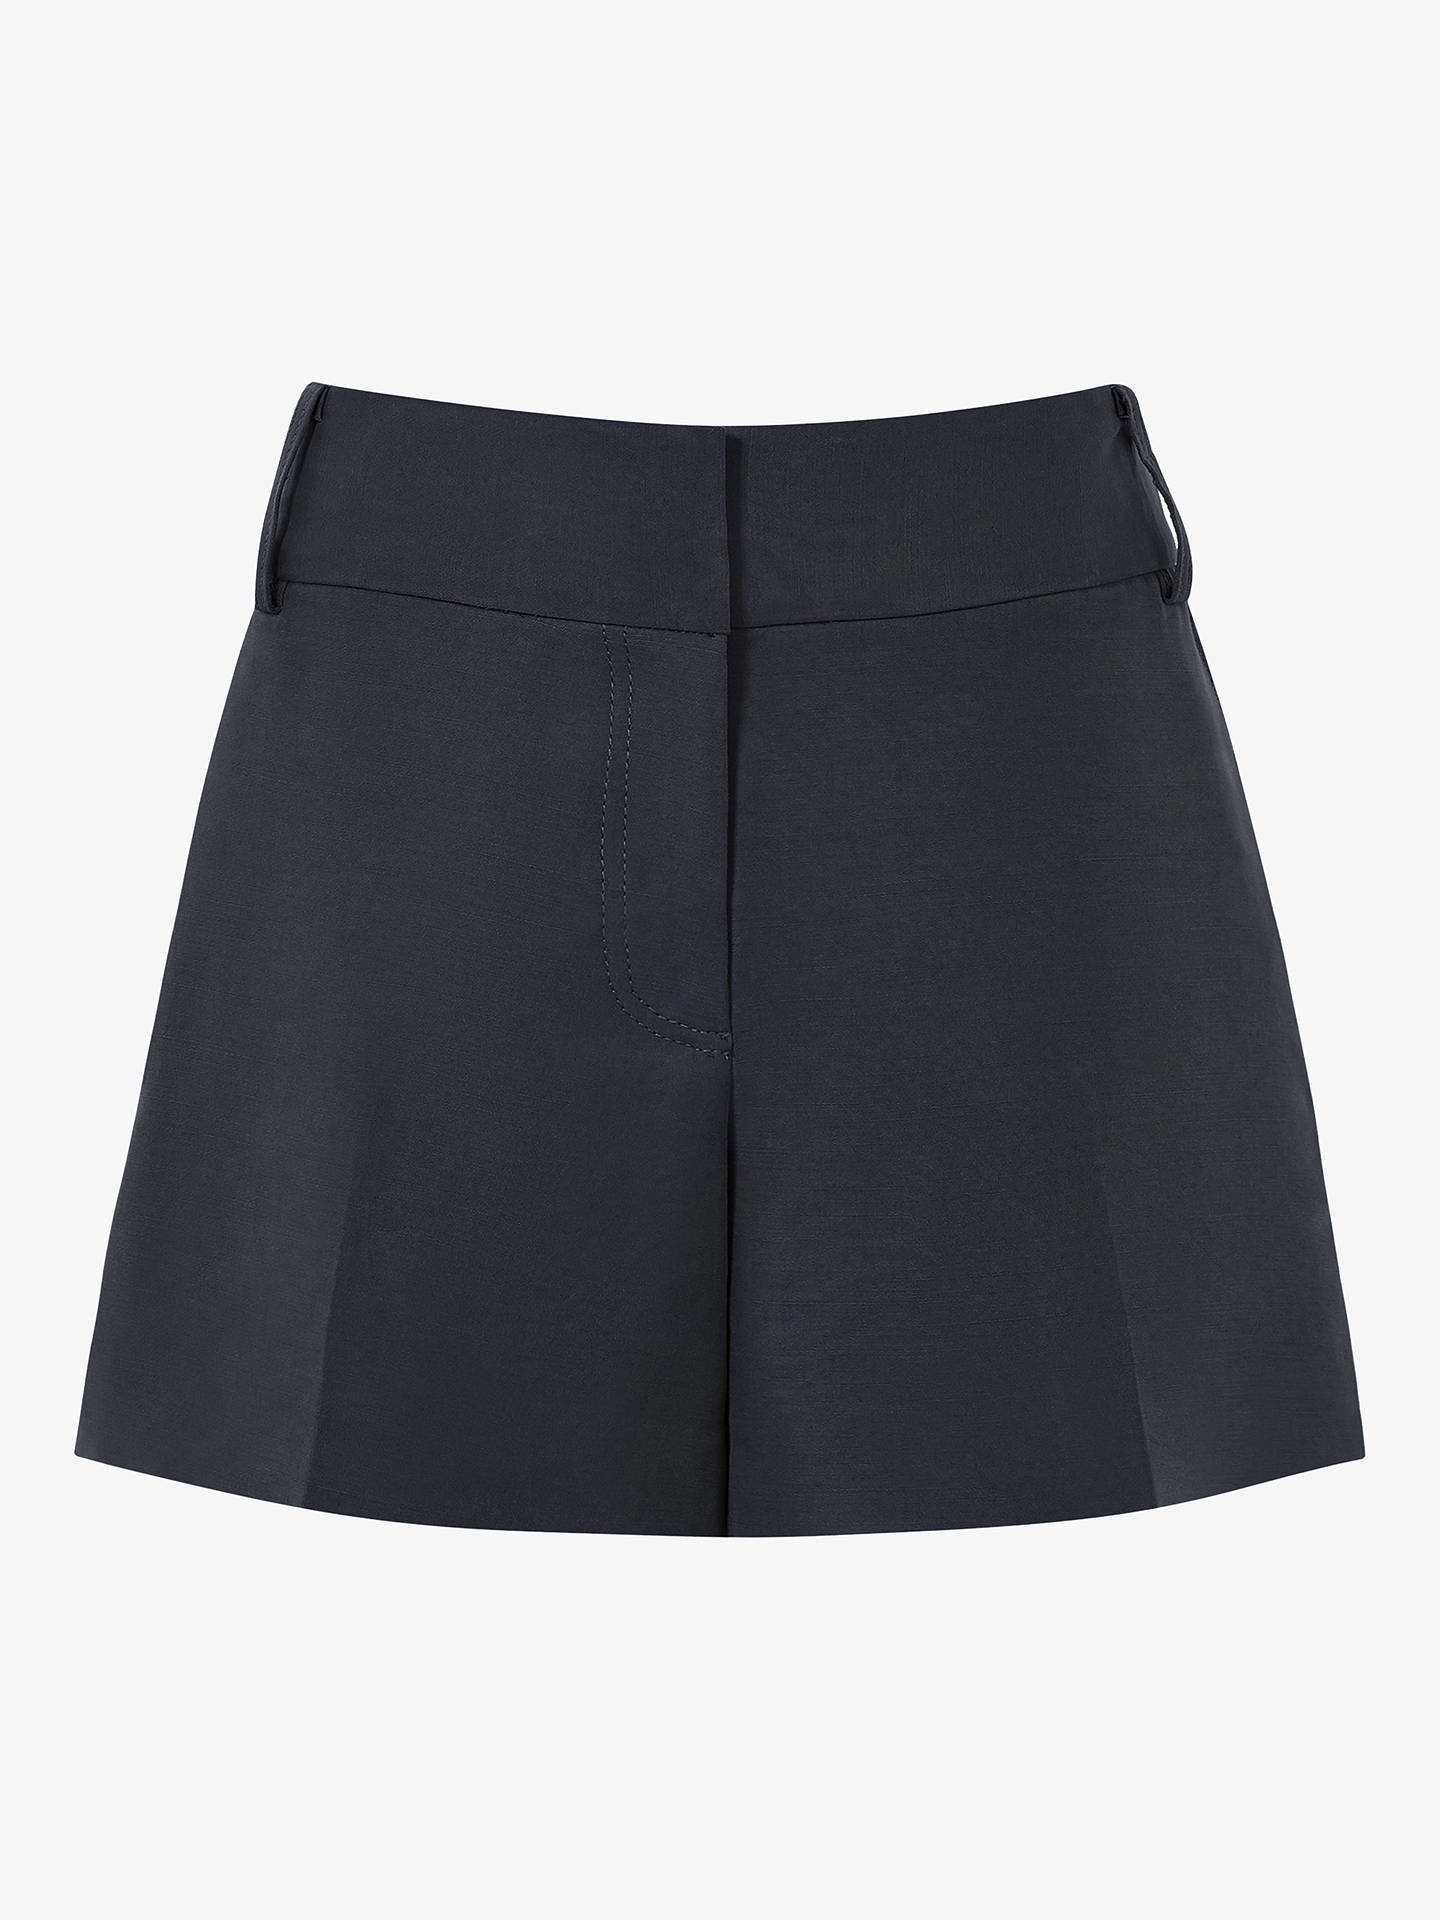 Buy Reiss Lyla Smart Shorts, Navy, 6 Online at johnlewis.com